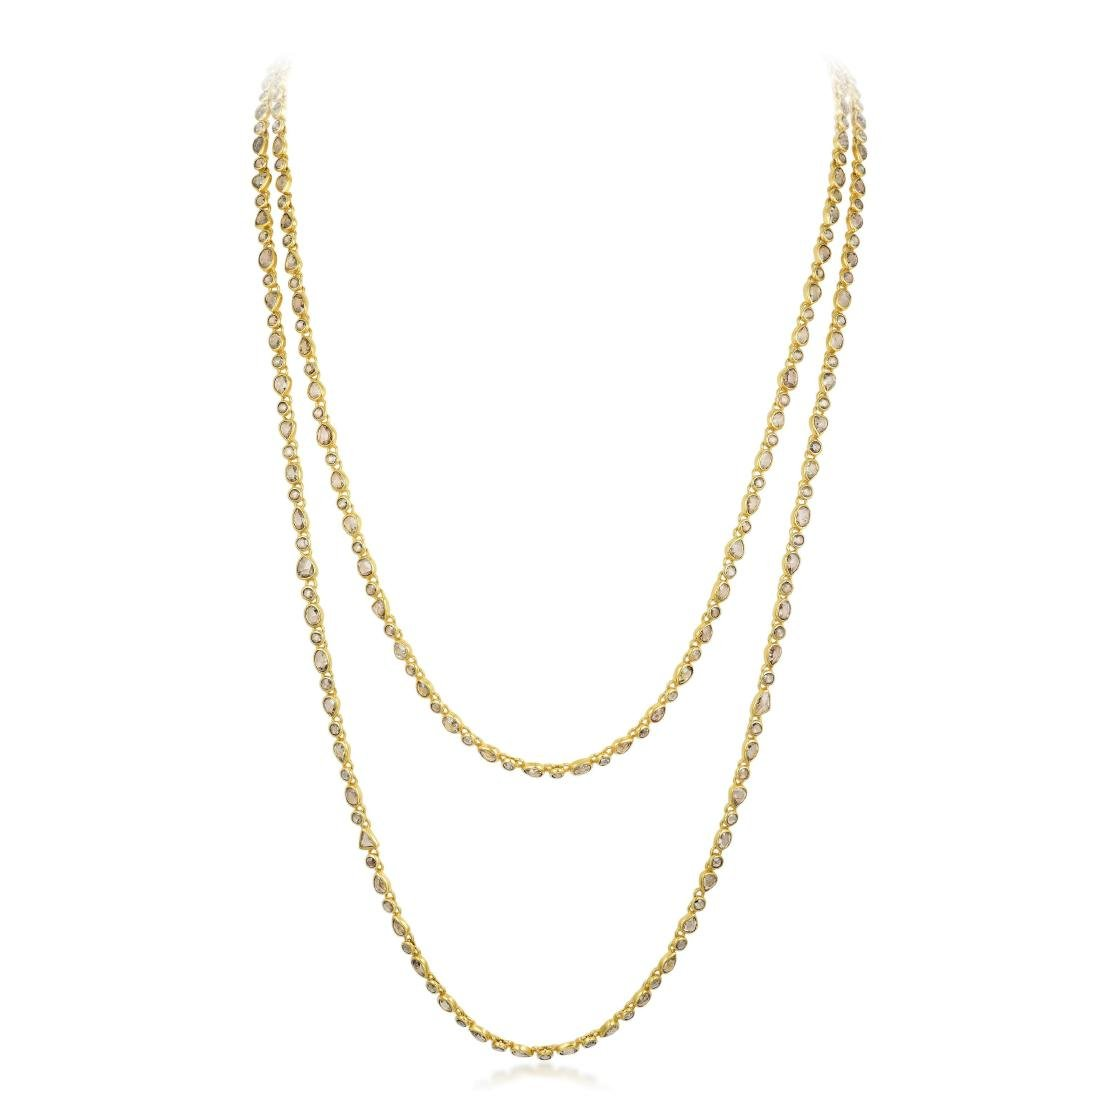 Indian Gold and Rose-Cut Diamond Long Chain Necklace